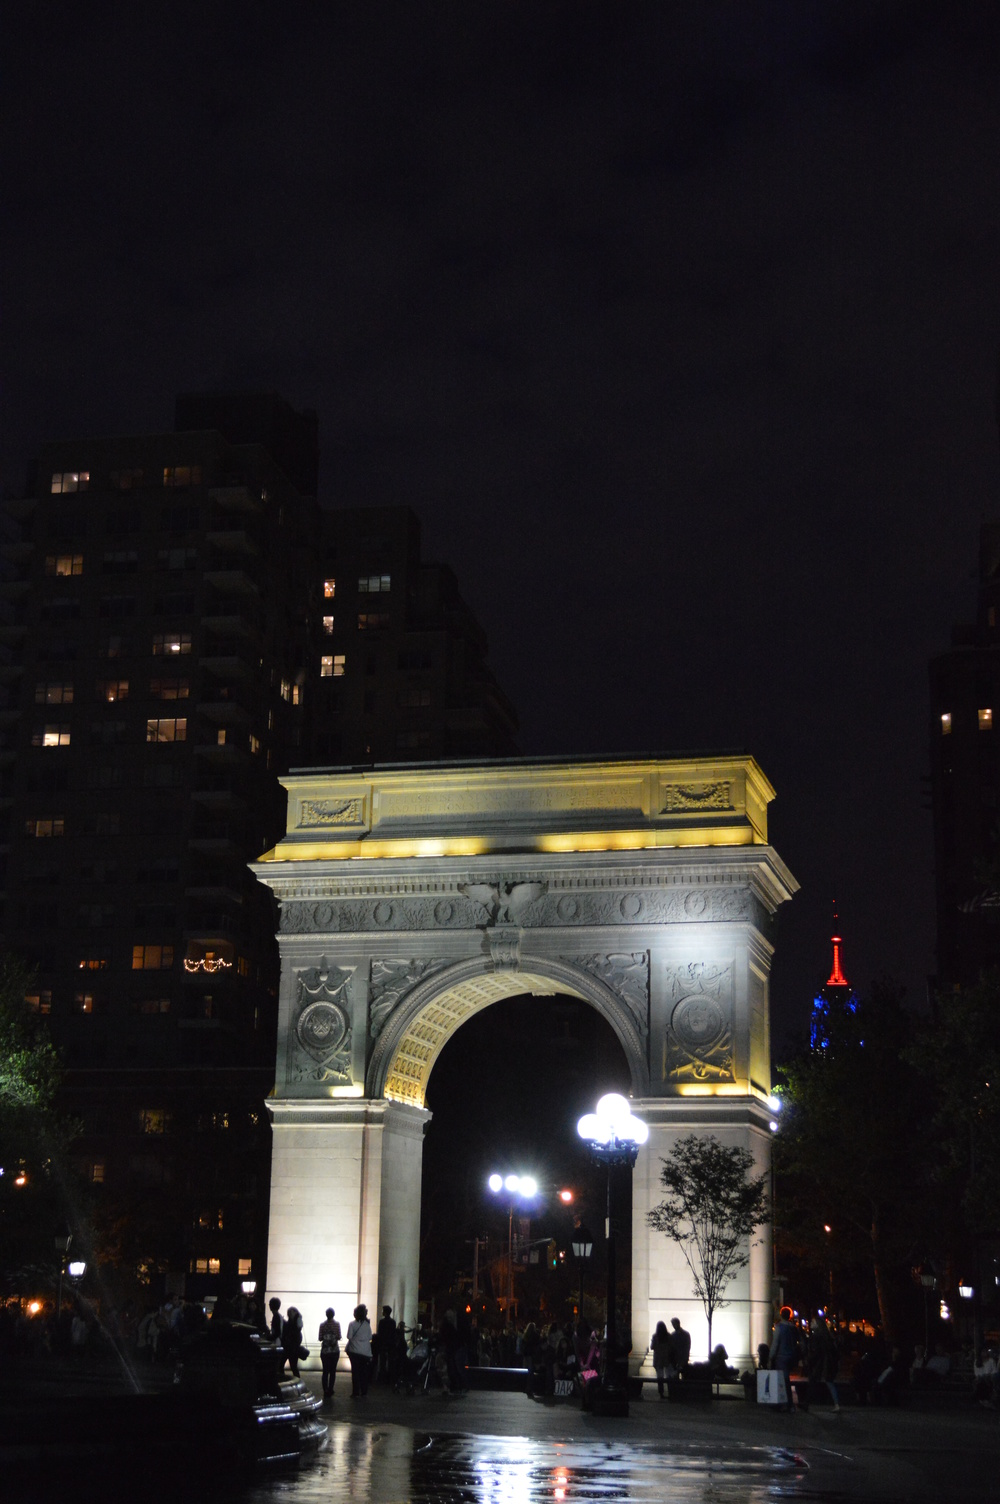 Washington Sq Park